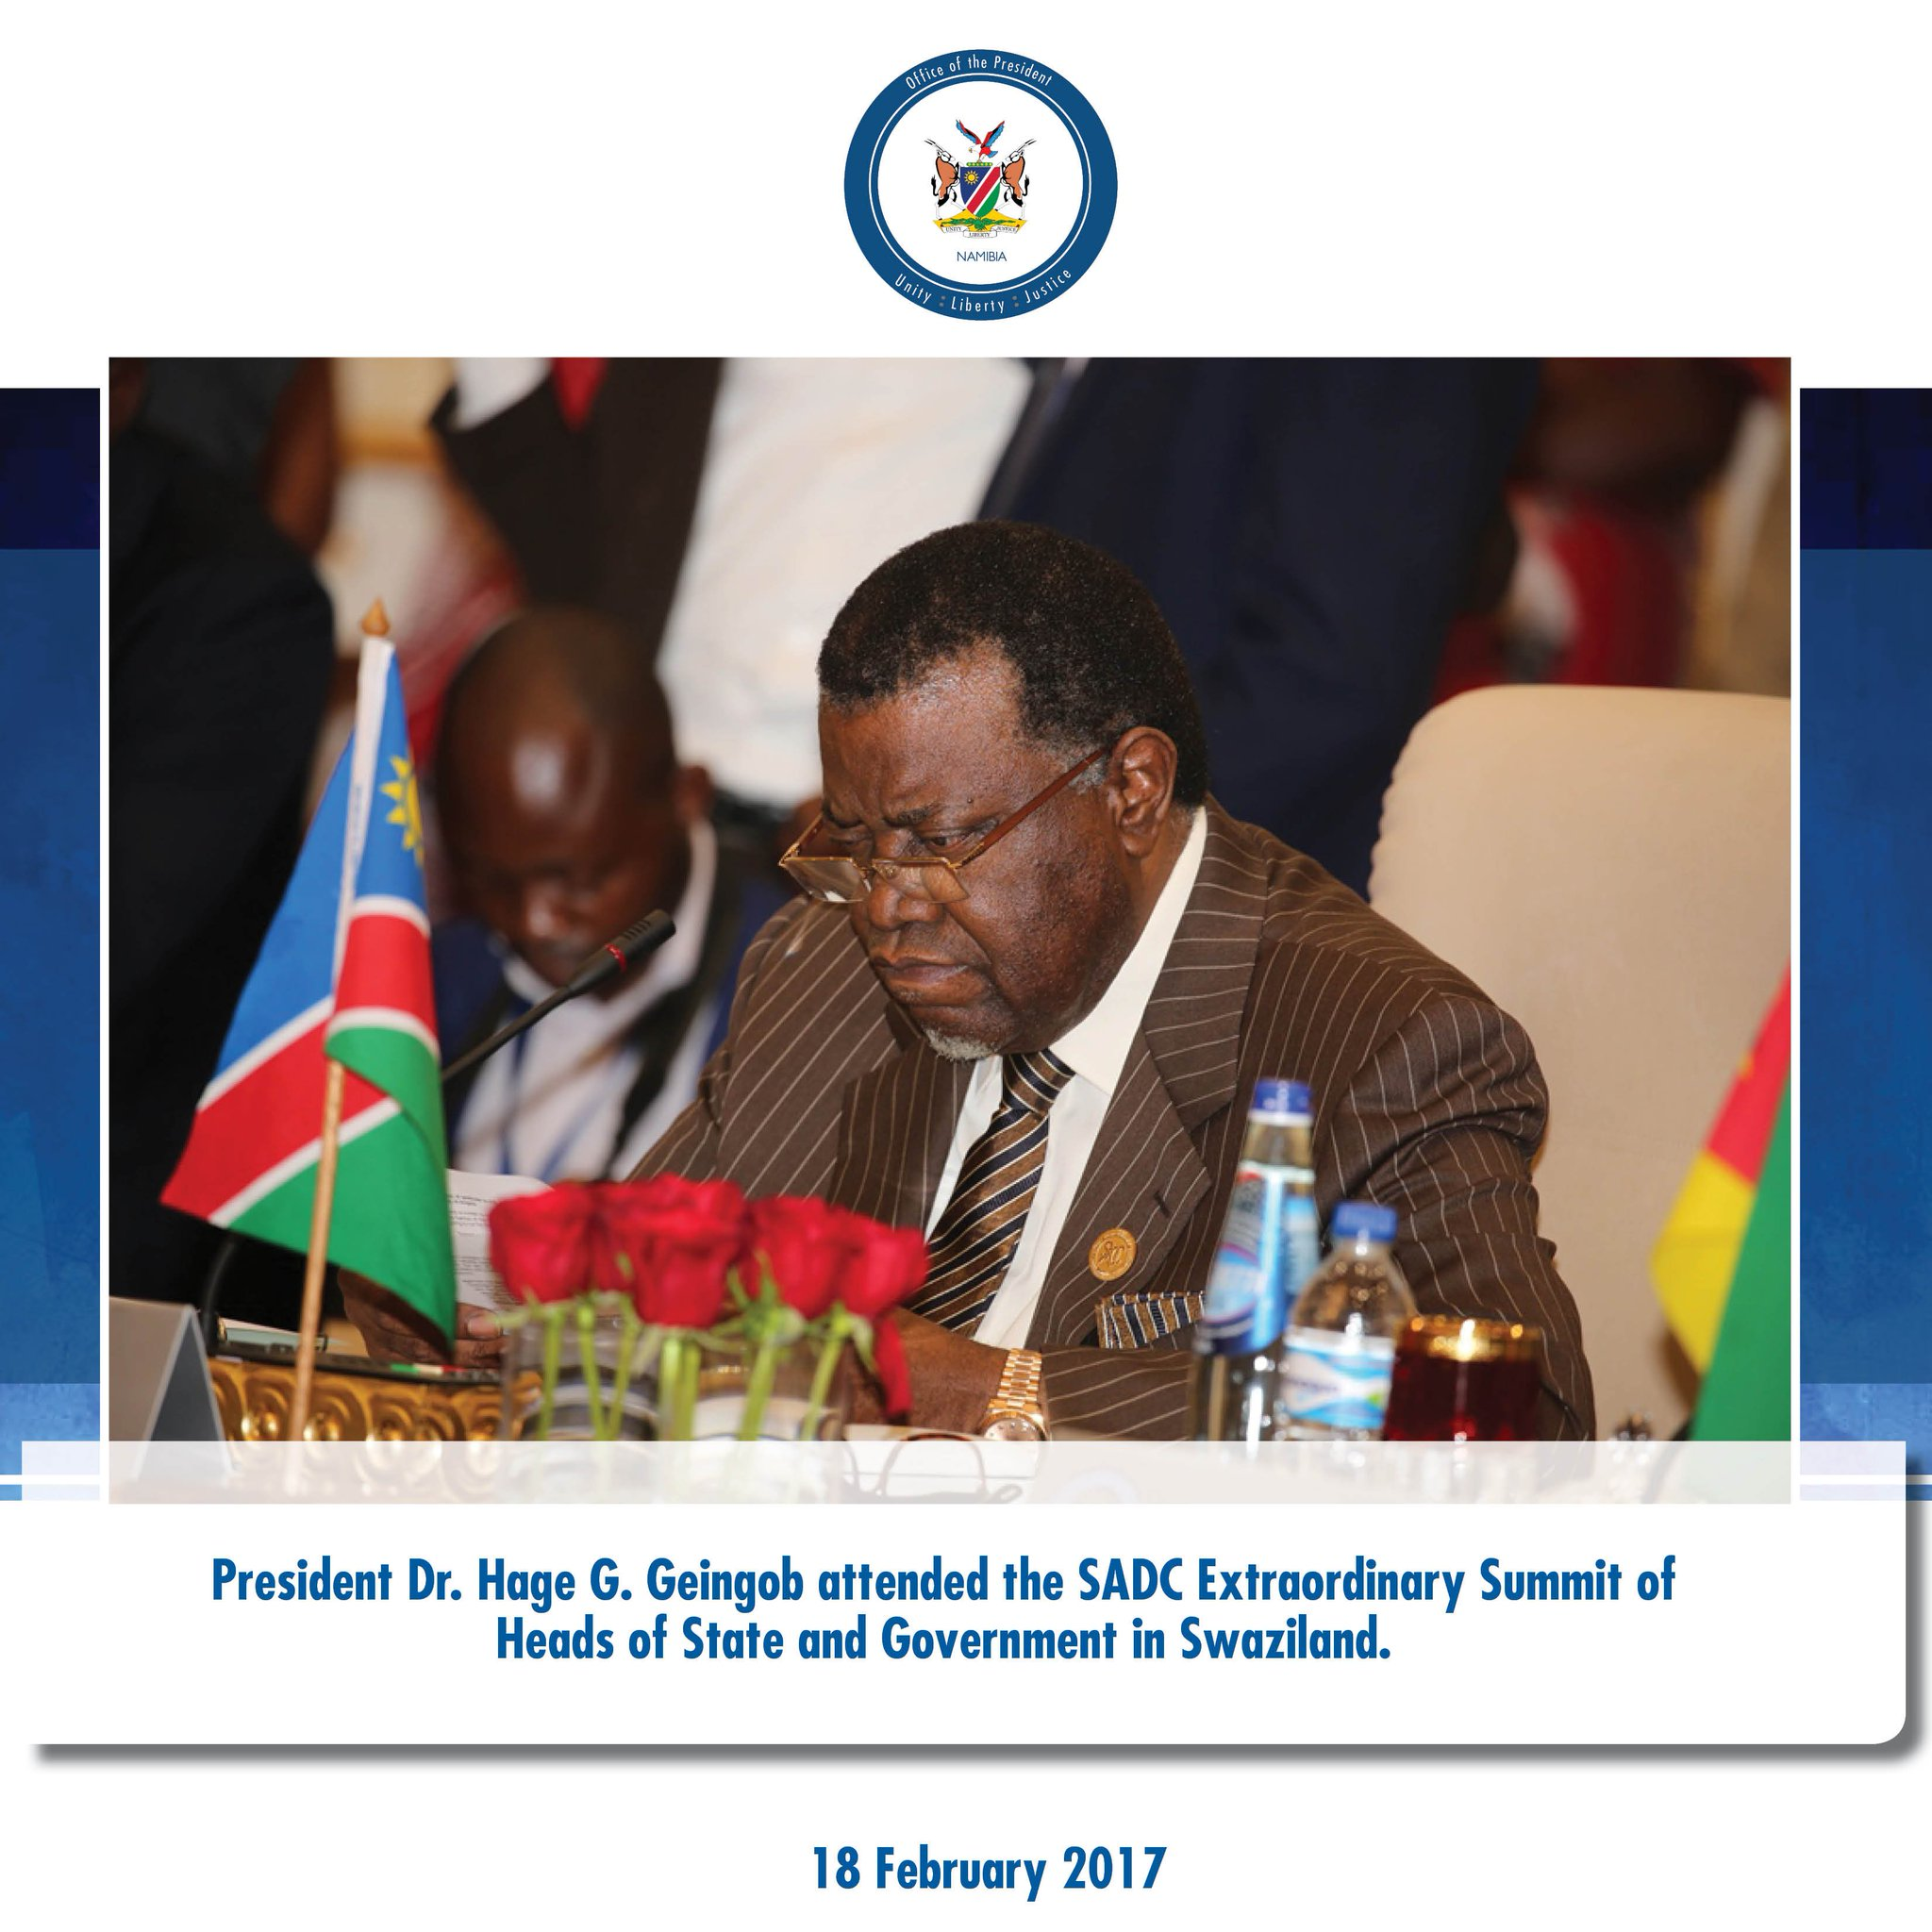 President @hagegeingob attended the #SADCExtraordinarySummit of Heads of State and Government in #Swaziland today. https://t.co/F428azBeeG